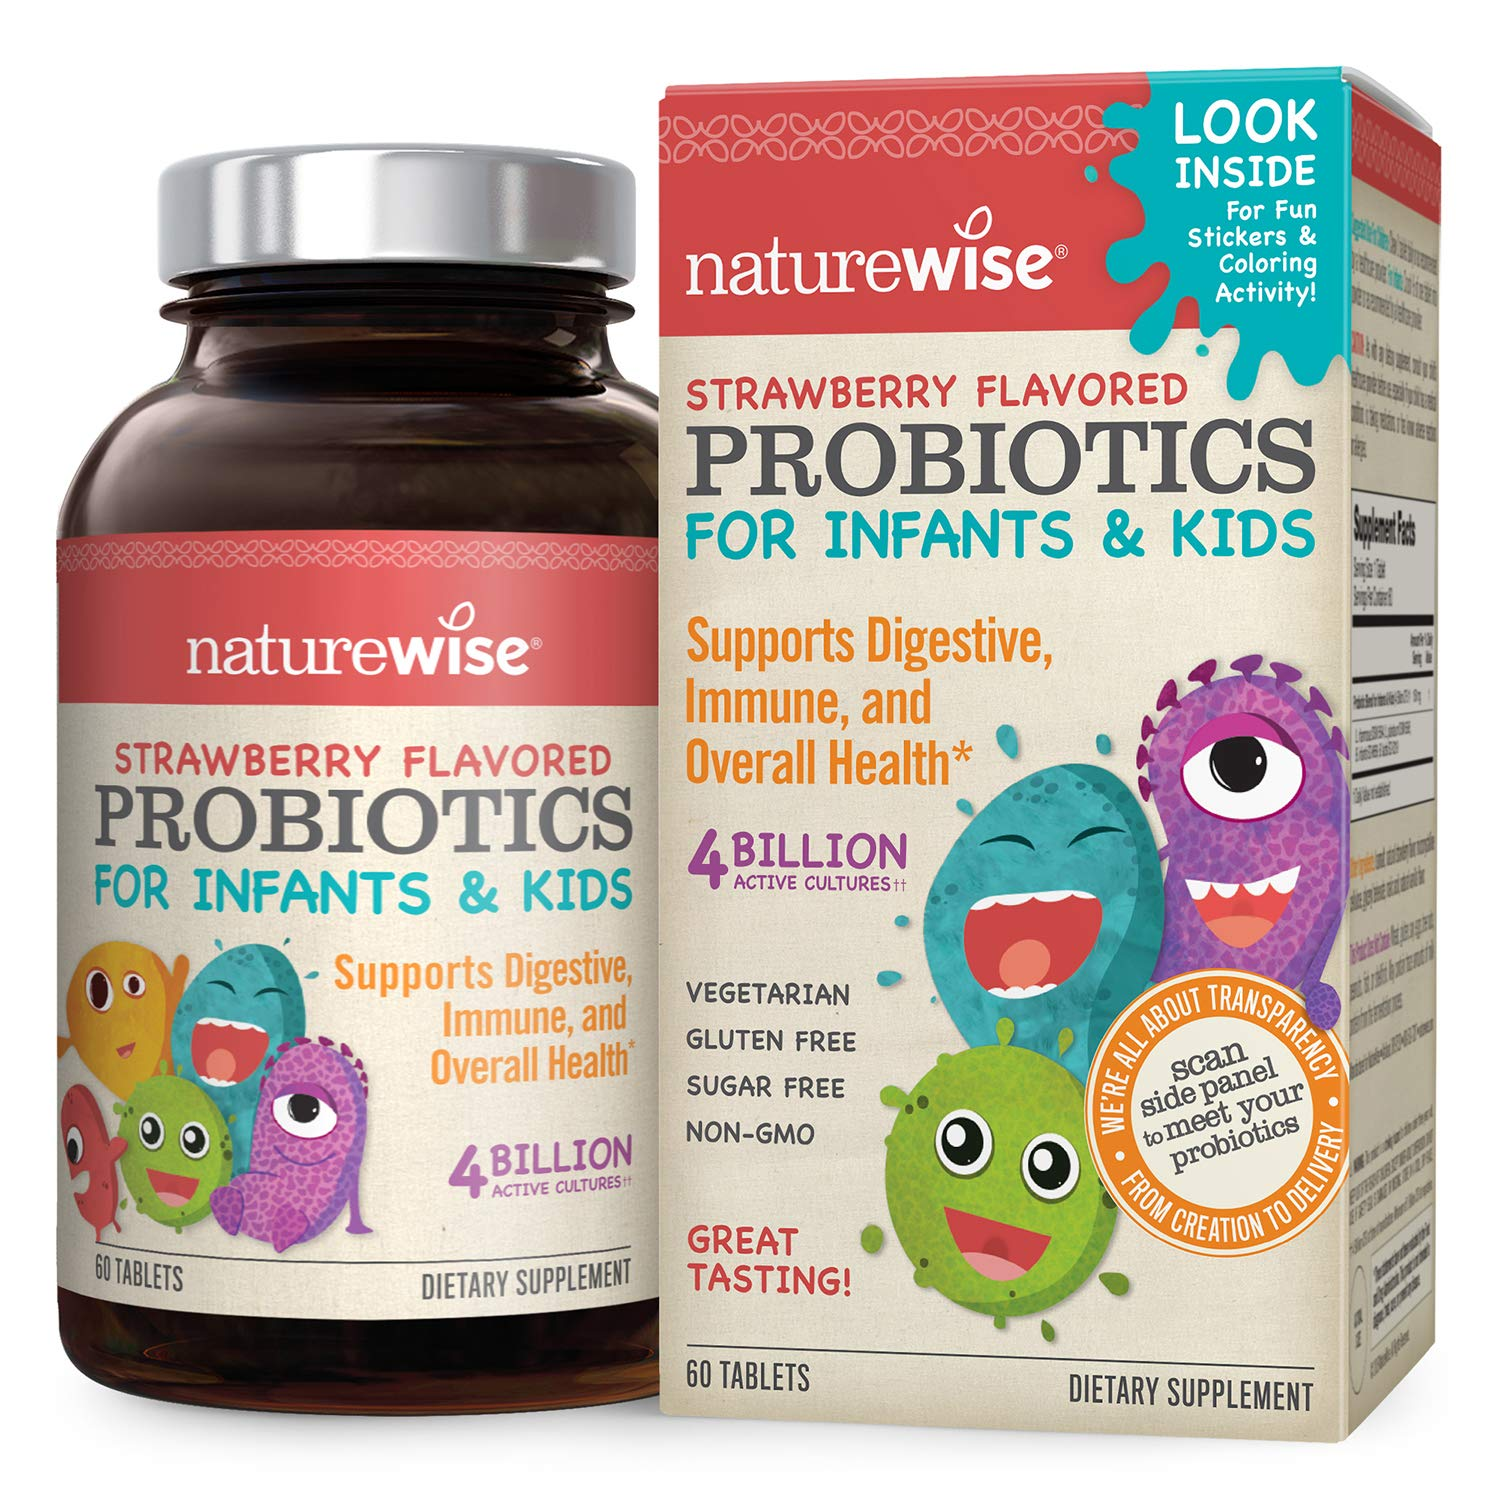 NatureWise Kids Chewable Probiotics Supplement | Clinically Researched for Digestion & Immune Support | Probiotic Powder for Children, Infants, & Babies | Sugar Free Natural Strawberry Flavor, 60 ct